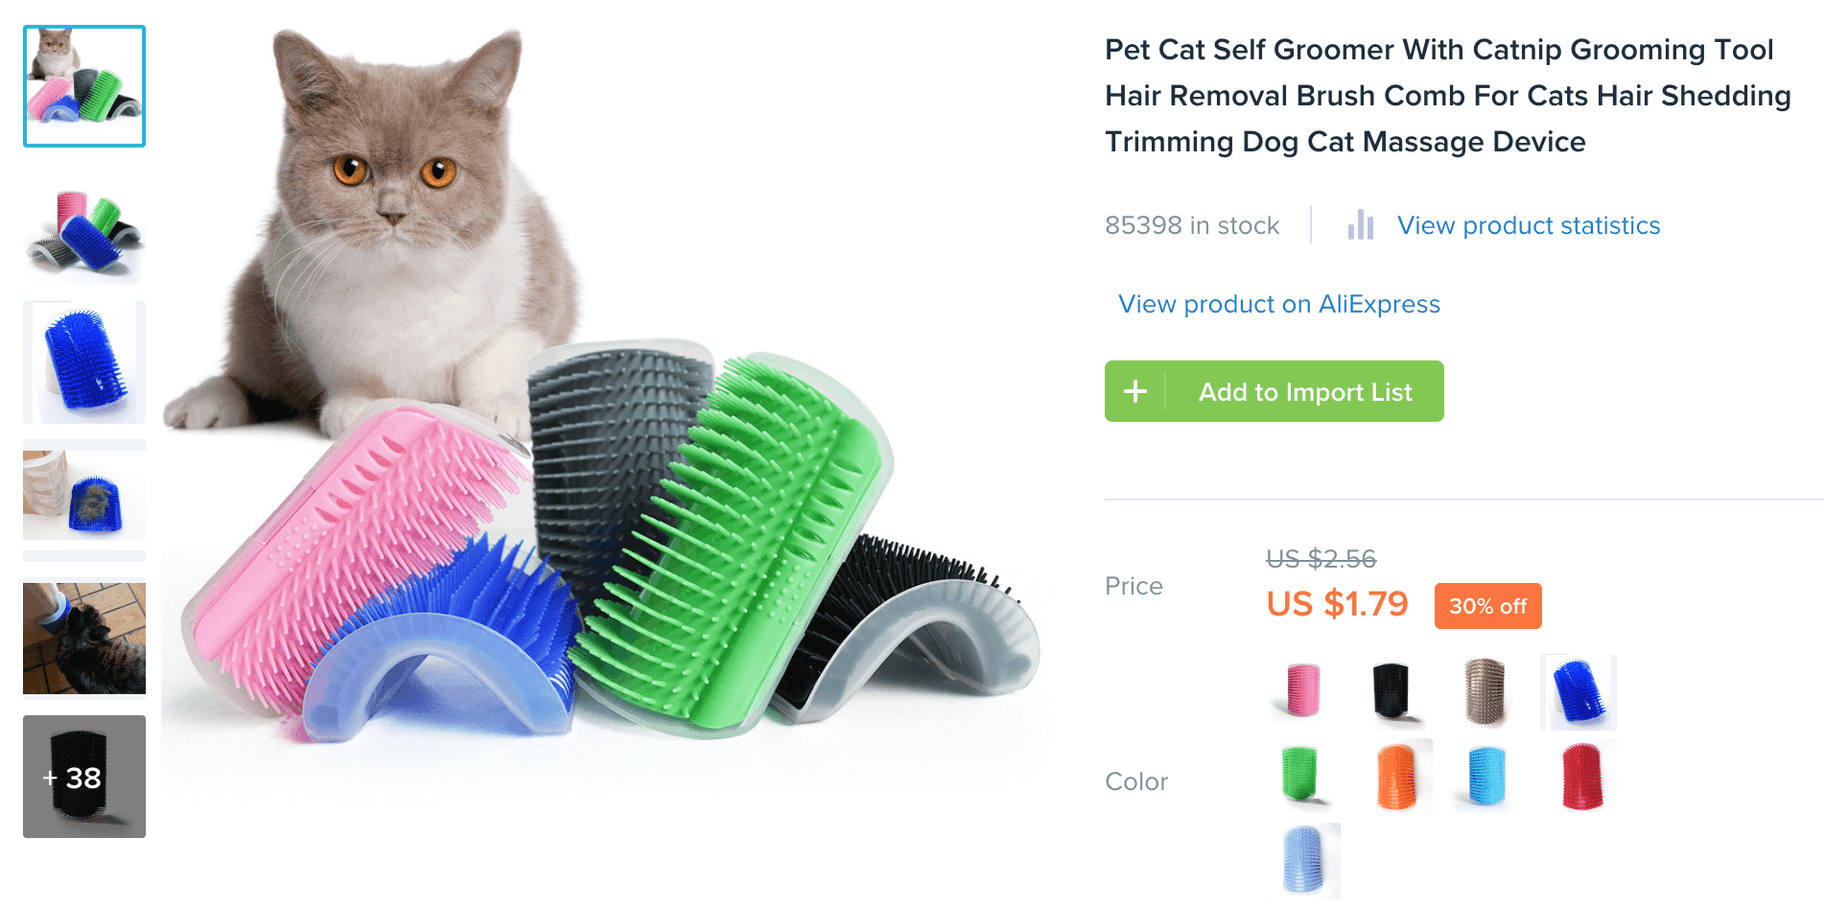 New Cat Self Groomer Product